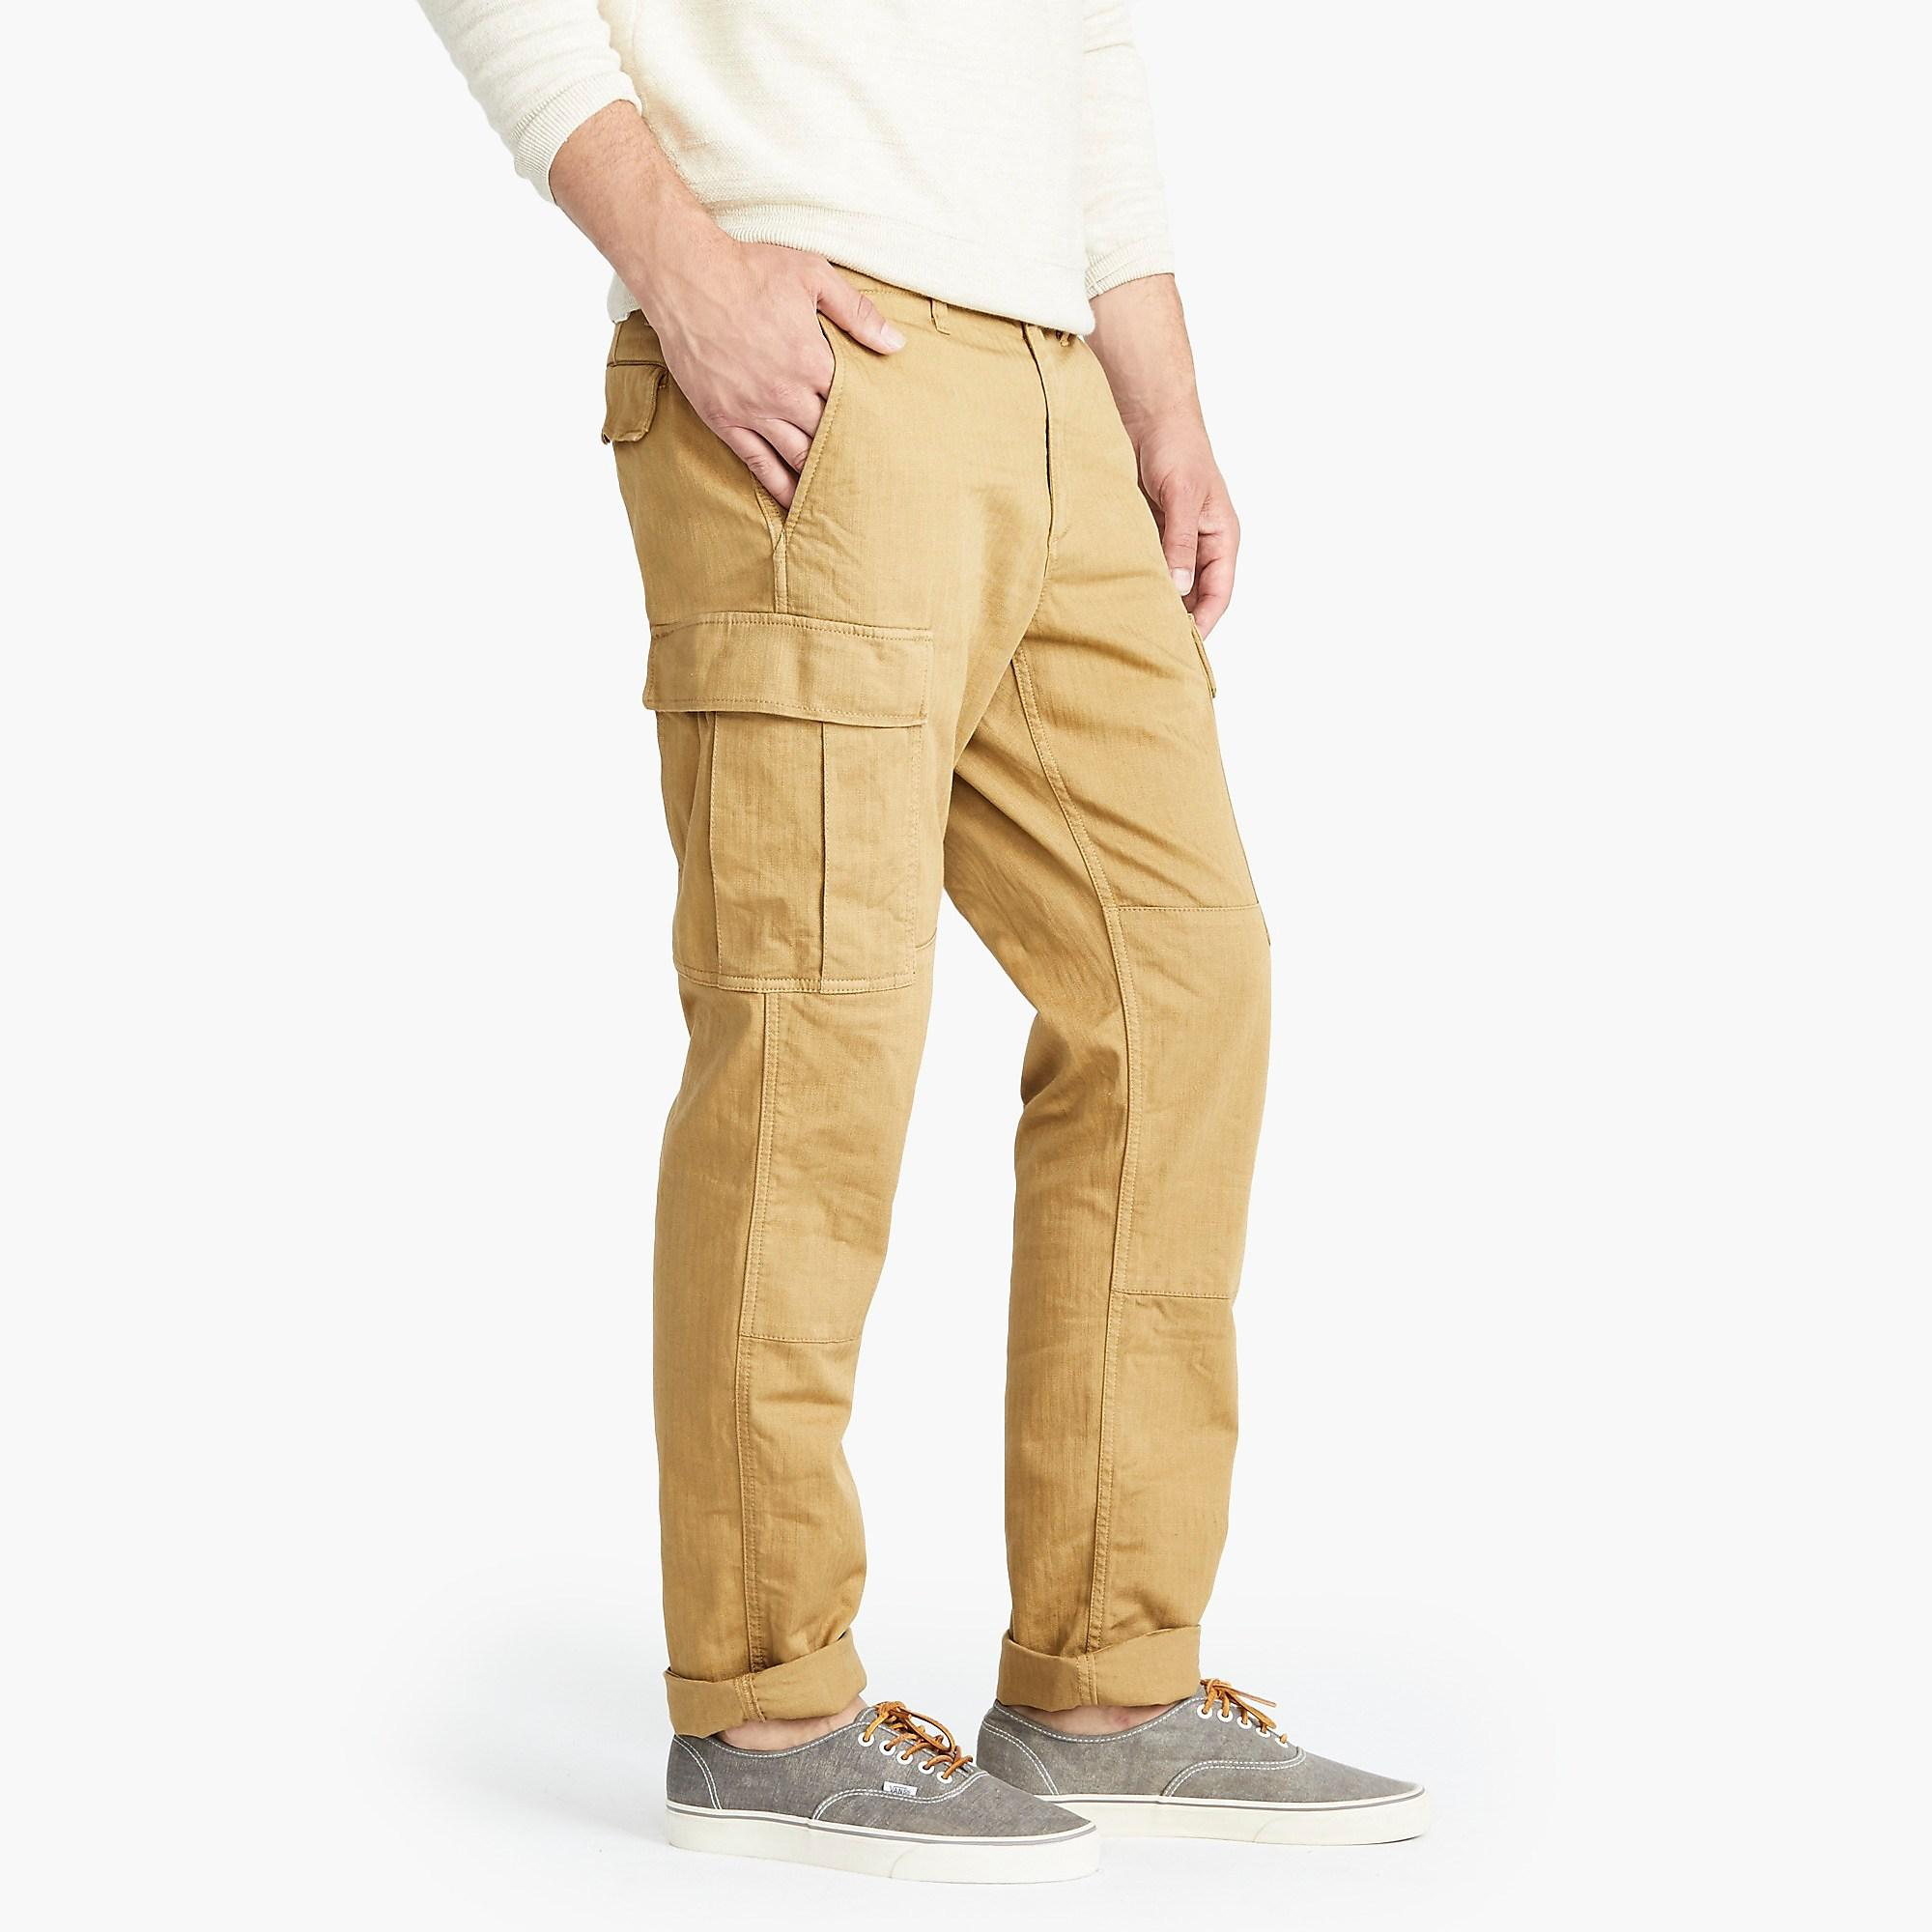 04e5bd44f5b323 J.Crew - Brown 770 Straight-fit Stretch Cargo Pant In Garment-dyed. View  fullscreen